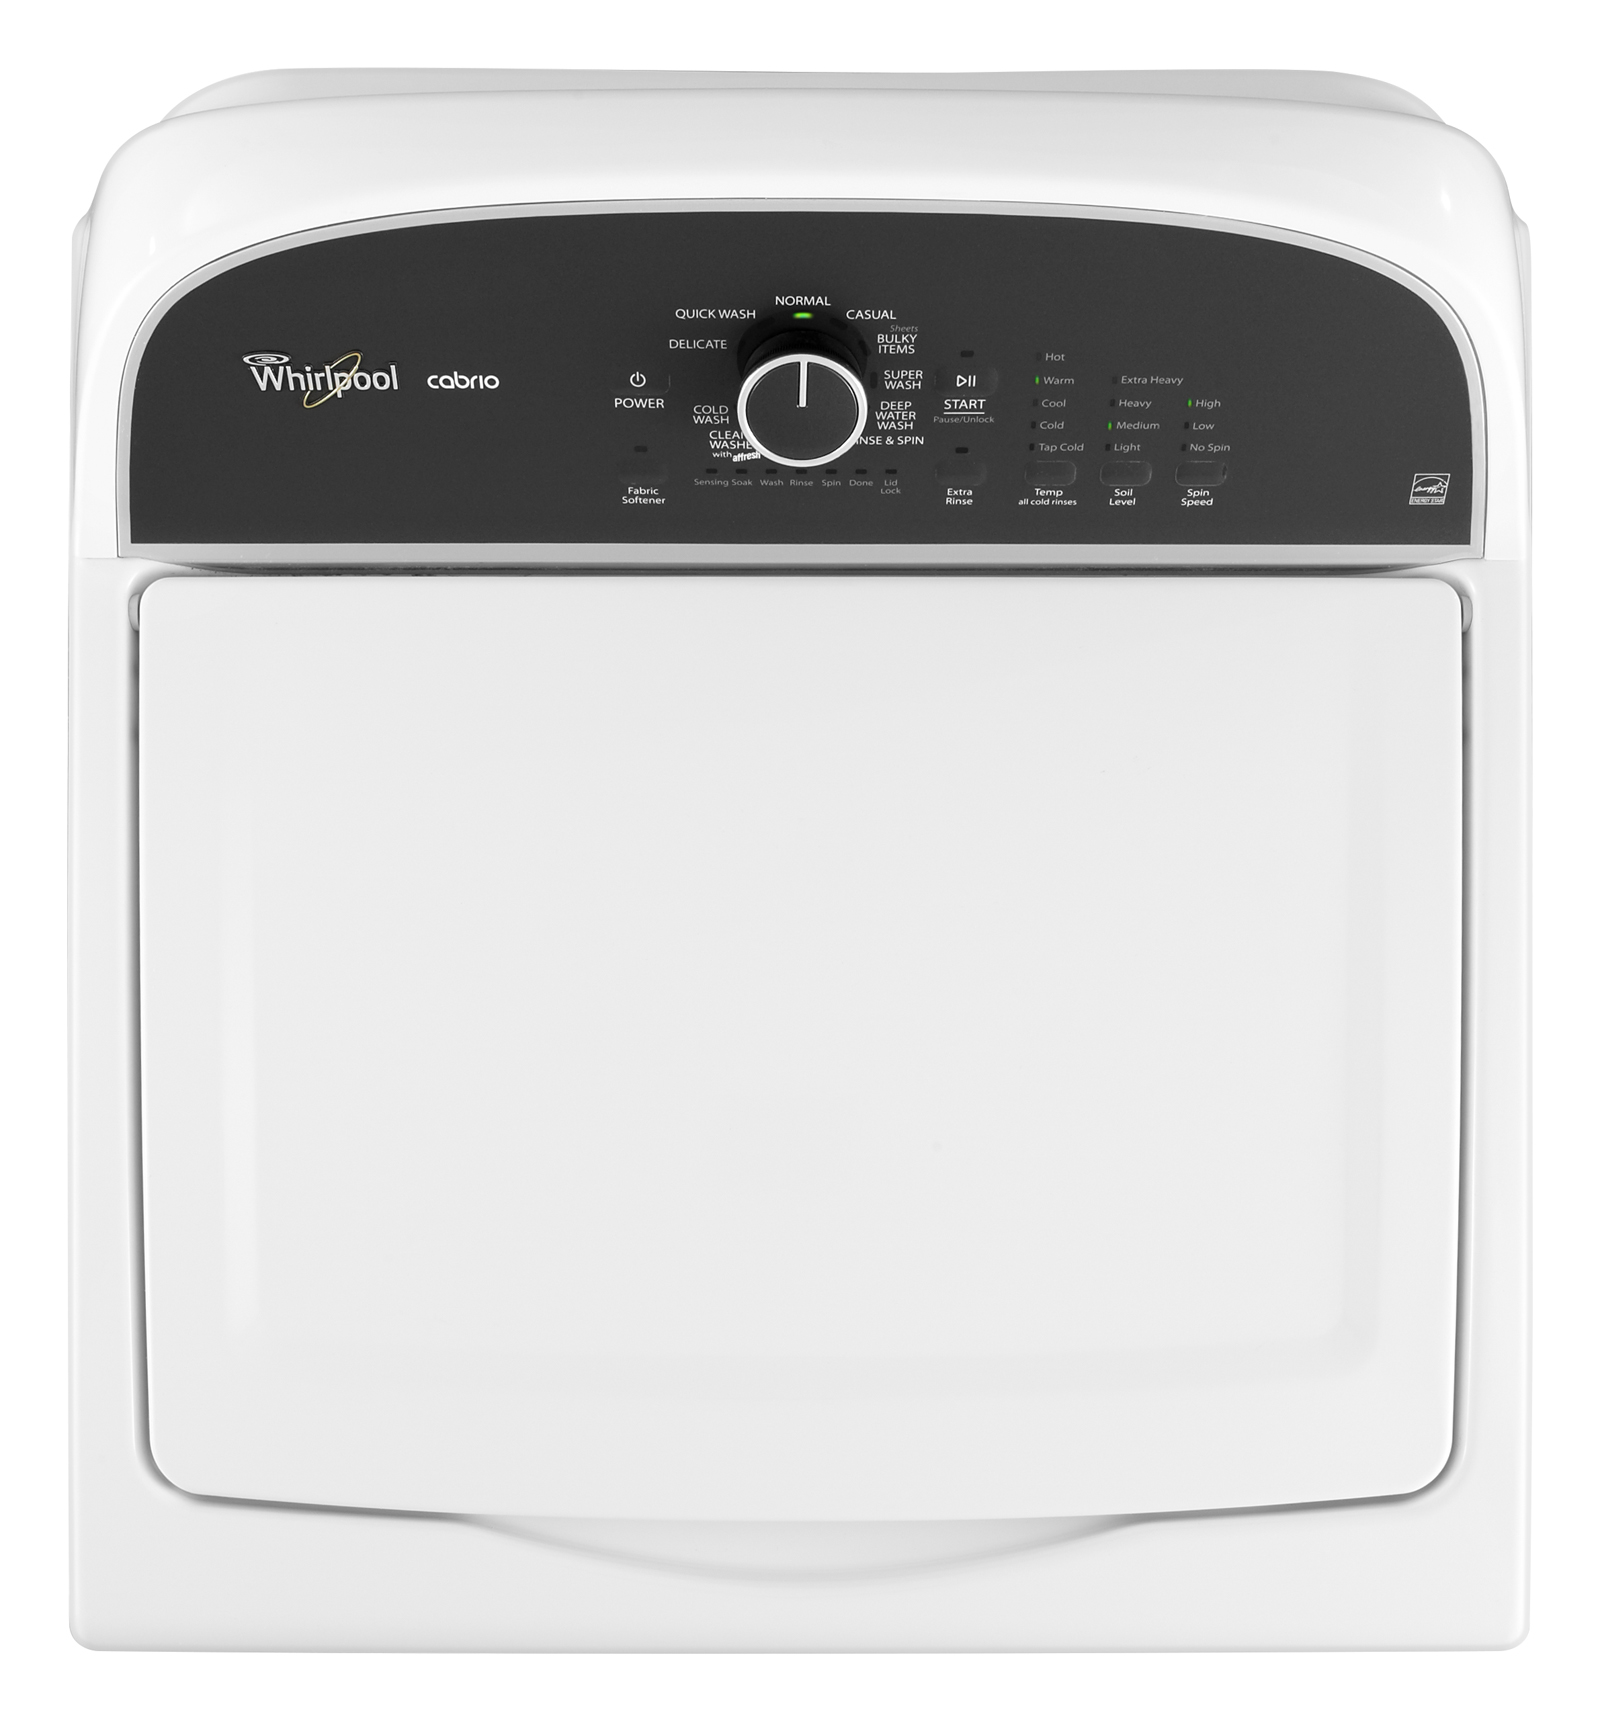 Whirlpool 3.8 cu. ft. HE Top-Load Washer w/ Precision Dispense - White